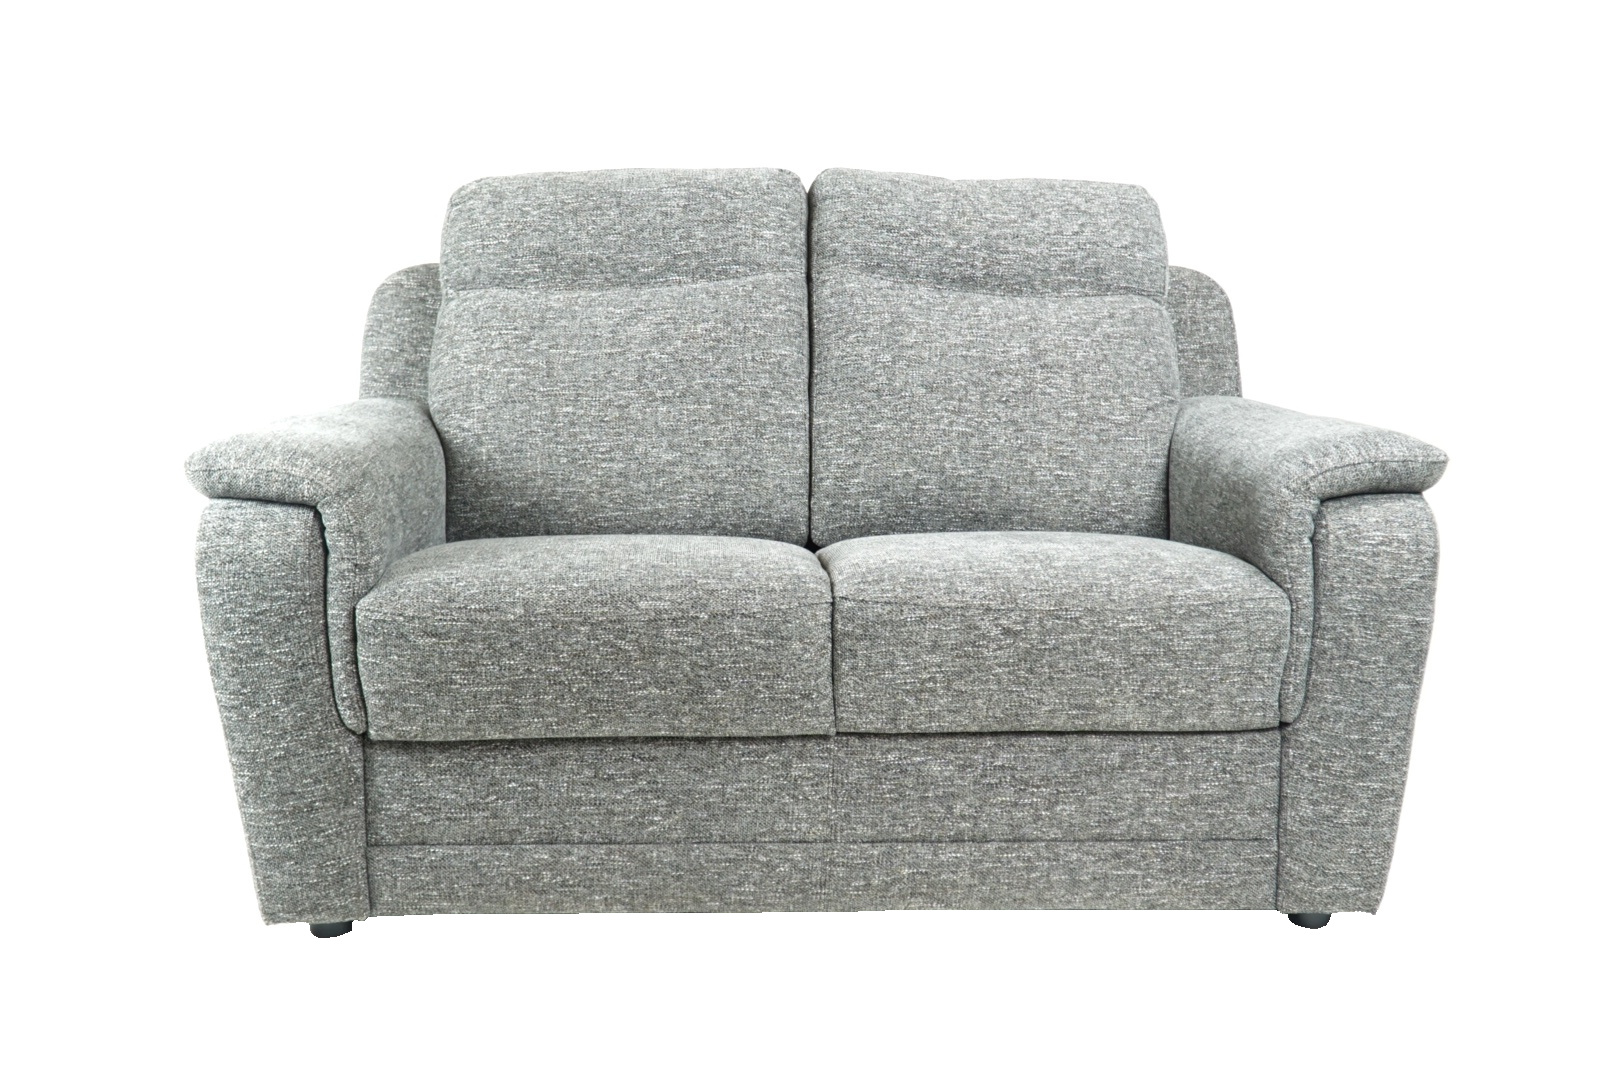 Dallas 2 Seater Sofa - OUTLET